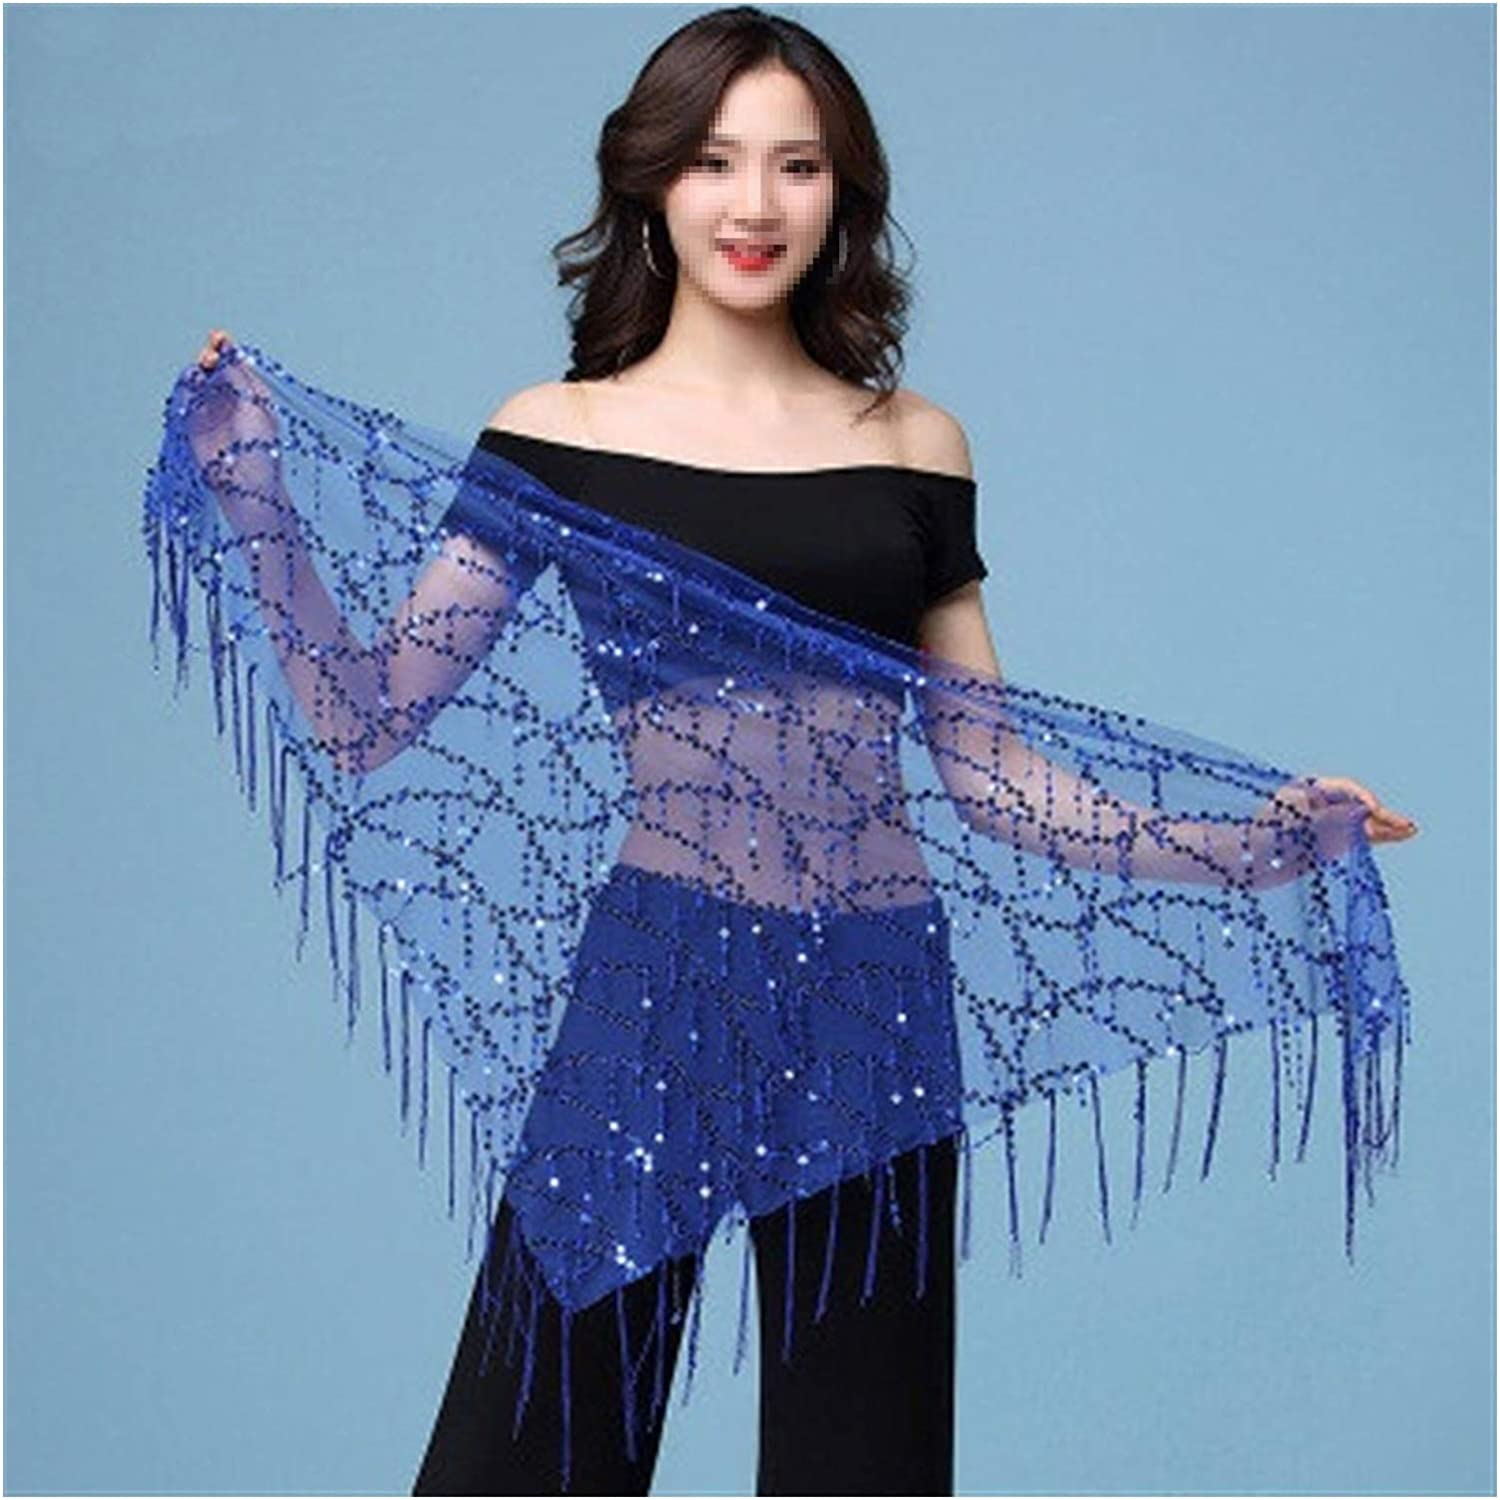 YHDZSWB Style Belly Dance Costumes Sequins Tassel Indian Belly Dance Hip Scarf for Women Belly Dancing Belt 11kinds of Colors Color : Black Gold, Size : One Size